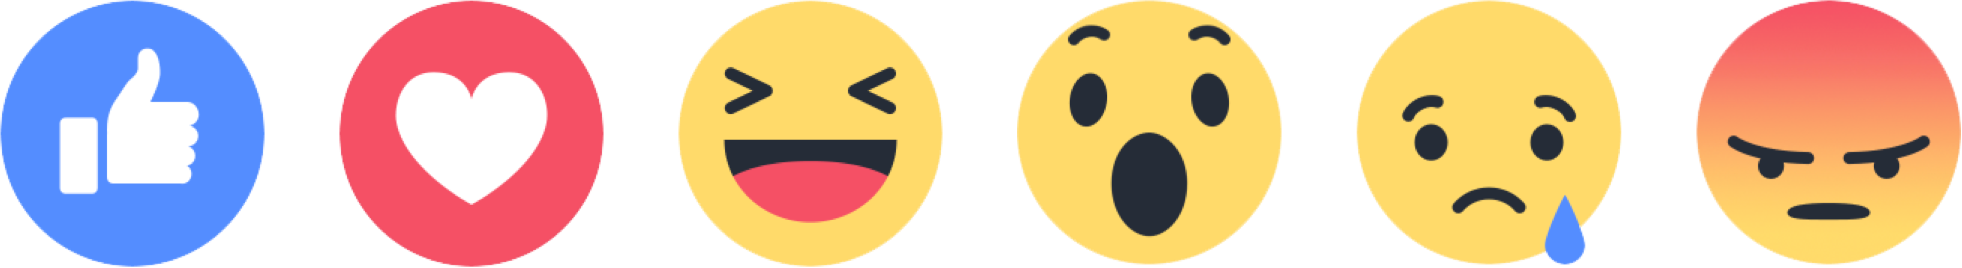 Fb reaction buttons png. Auto megsta com facebook